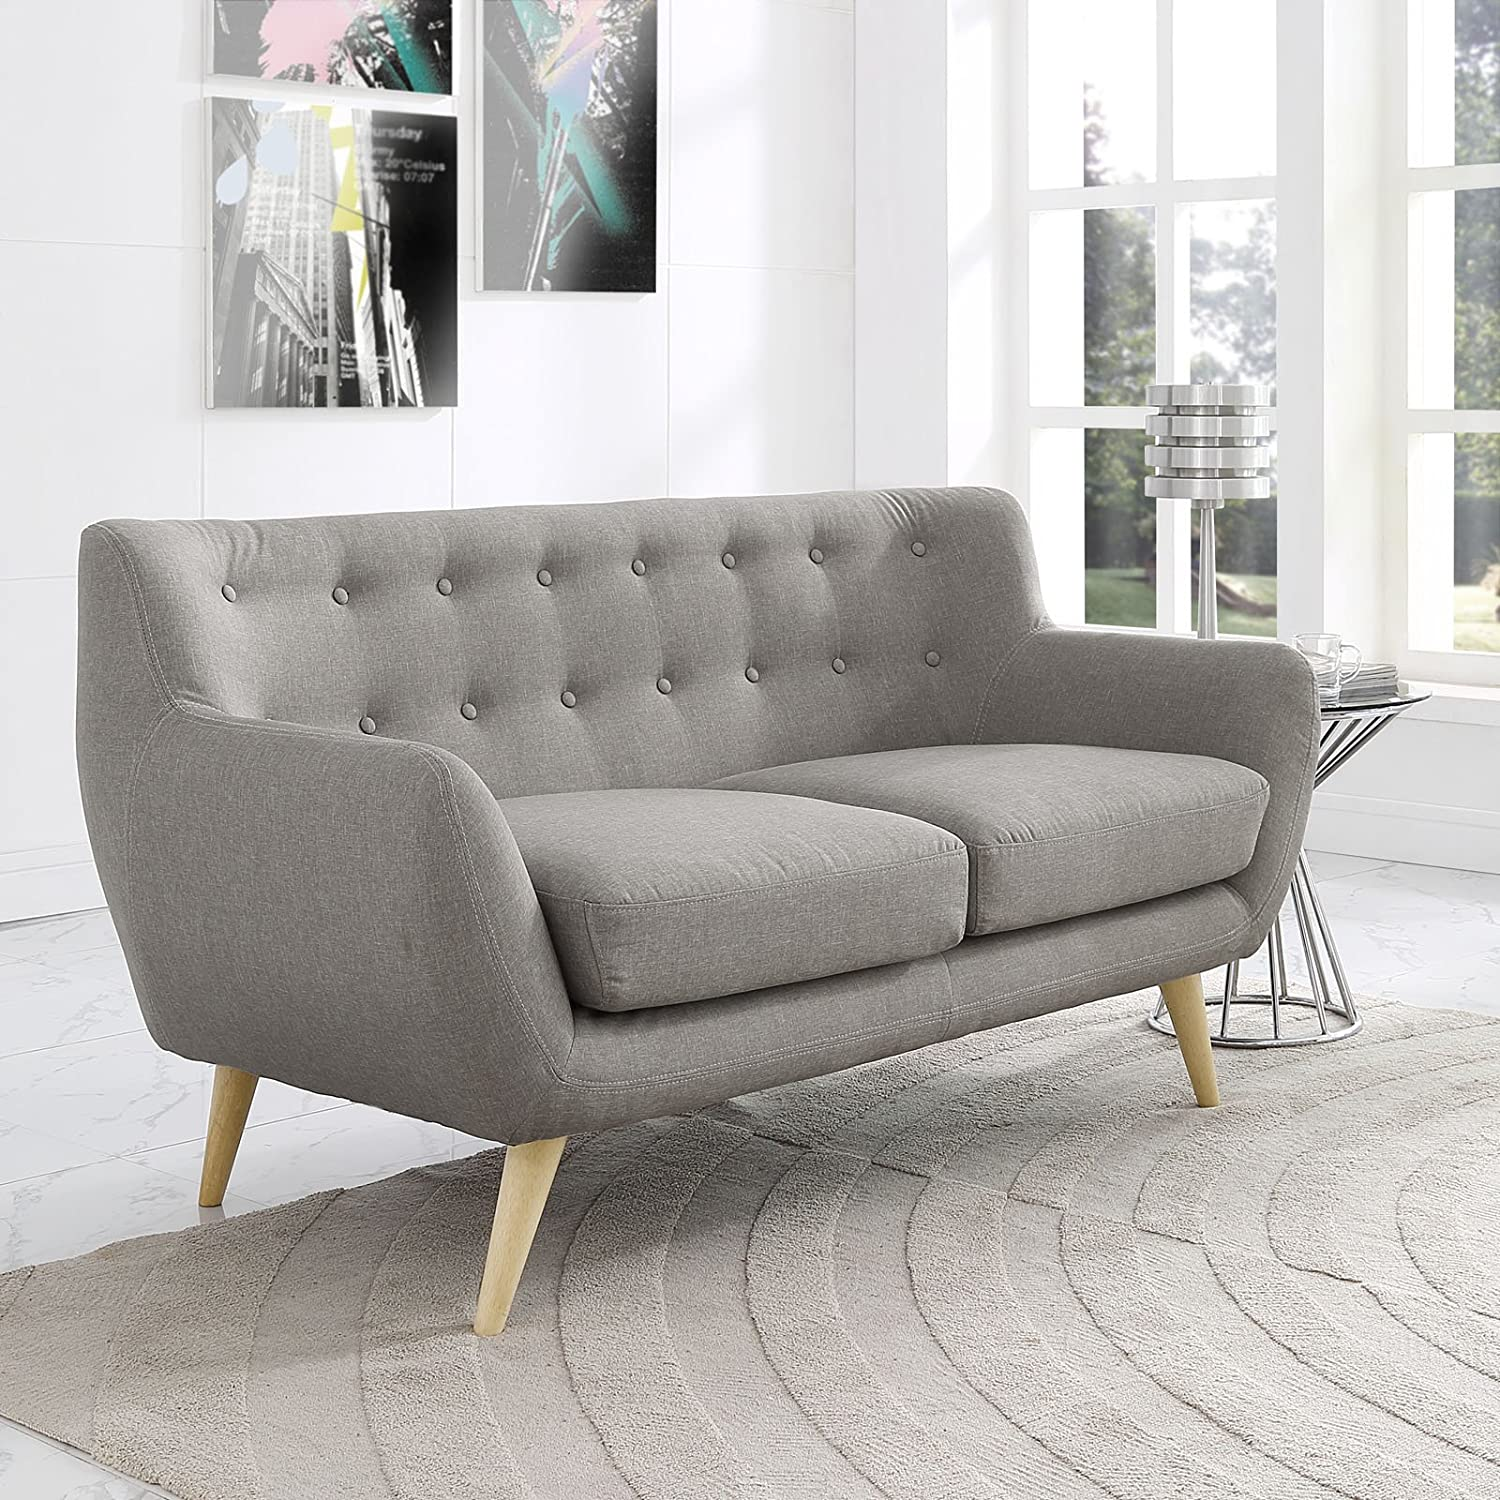 steel sectional framed base decorating sofa ideas cornerstone living scheme on budget grey painting colorful white stainless striped wall over loveseat room color walls a square leather